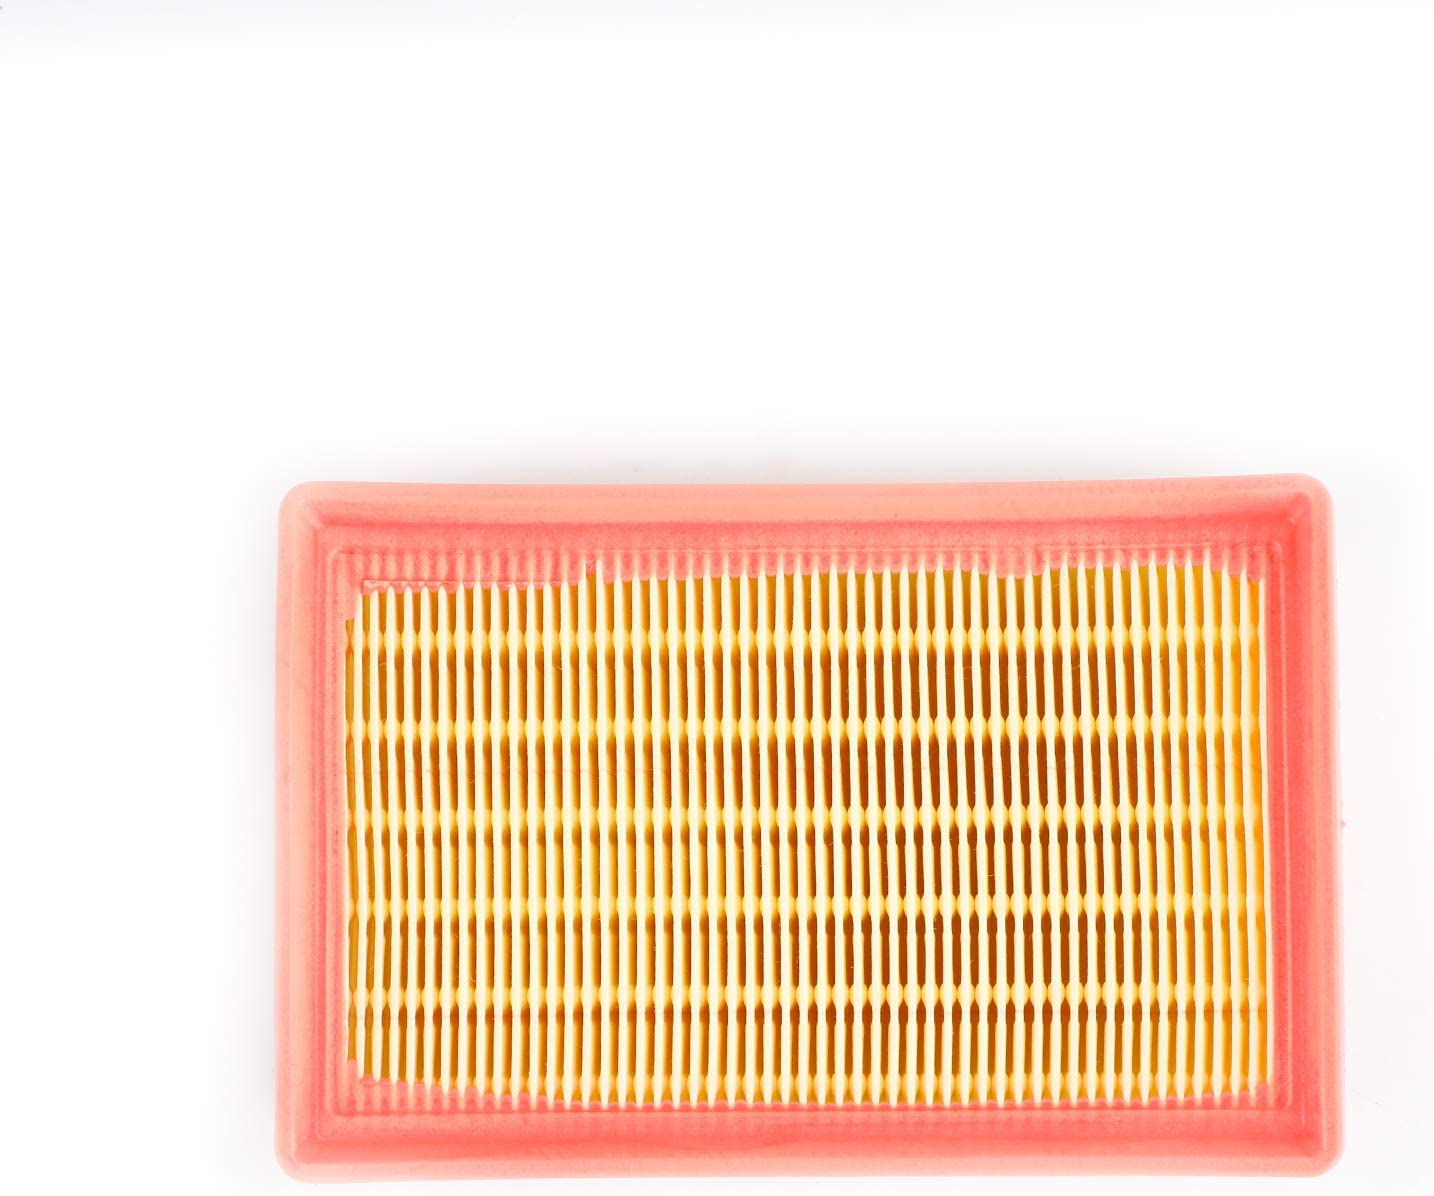 Artudatech Moto Air Filter OEM Air Cleaner System Replacement Air Intake Cleaner Filter for B-M-W R1200GS R1250GS R1200RT R1250RT R1200R//RS R1250R//RS